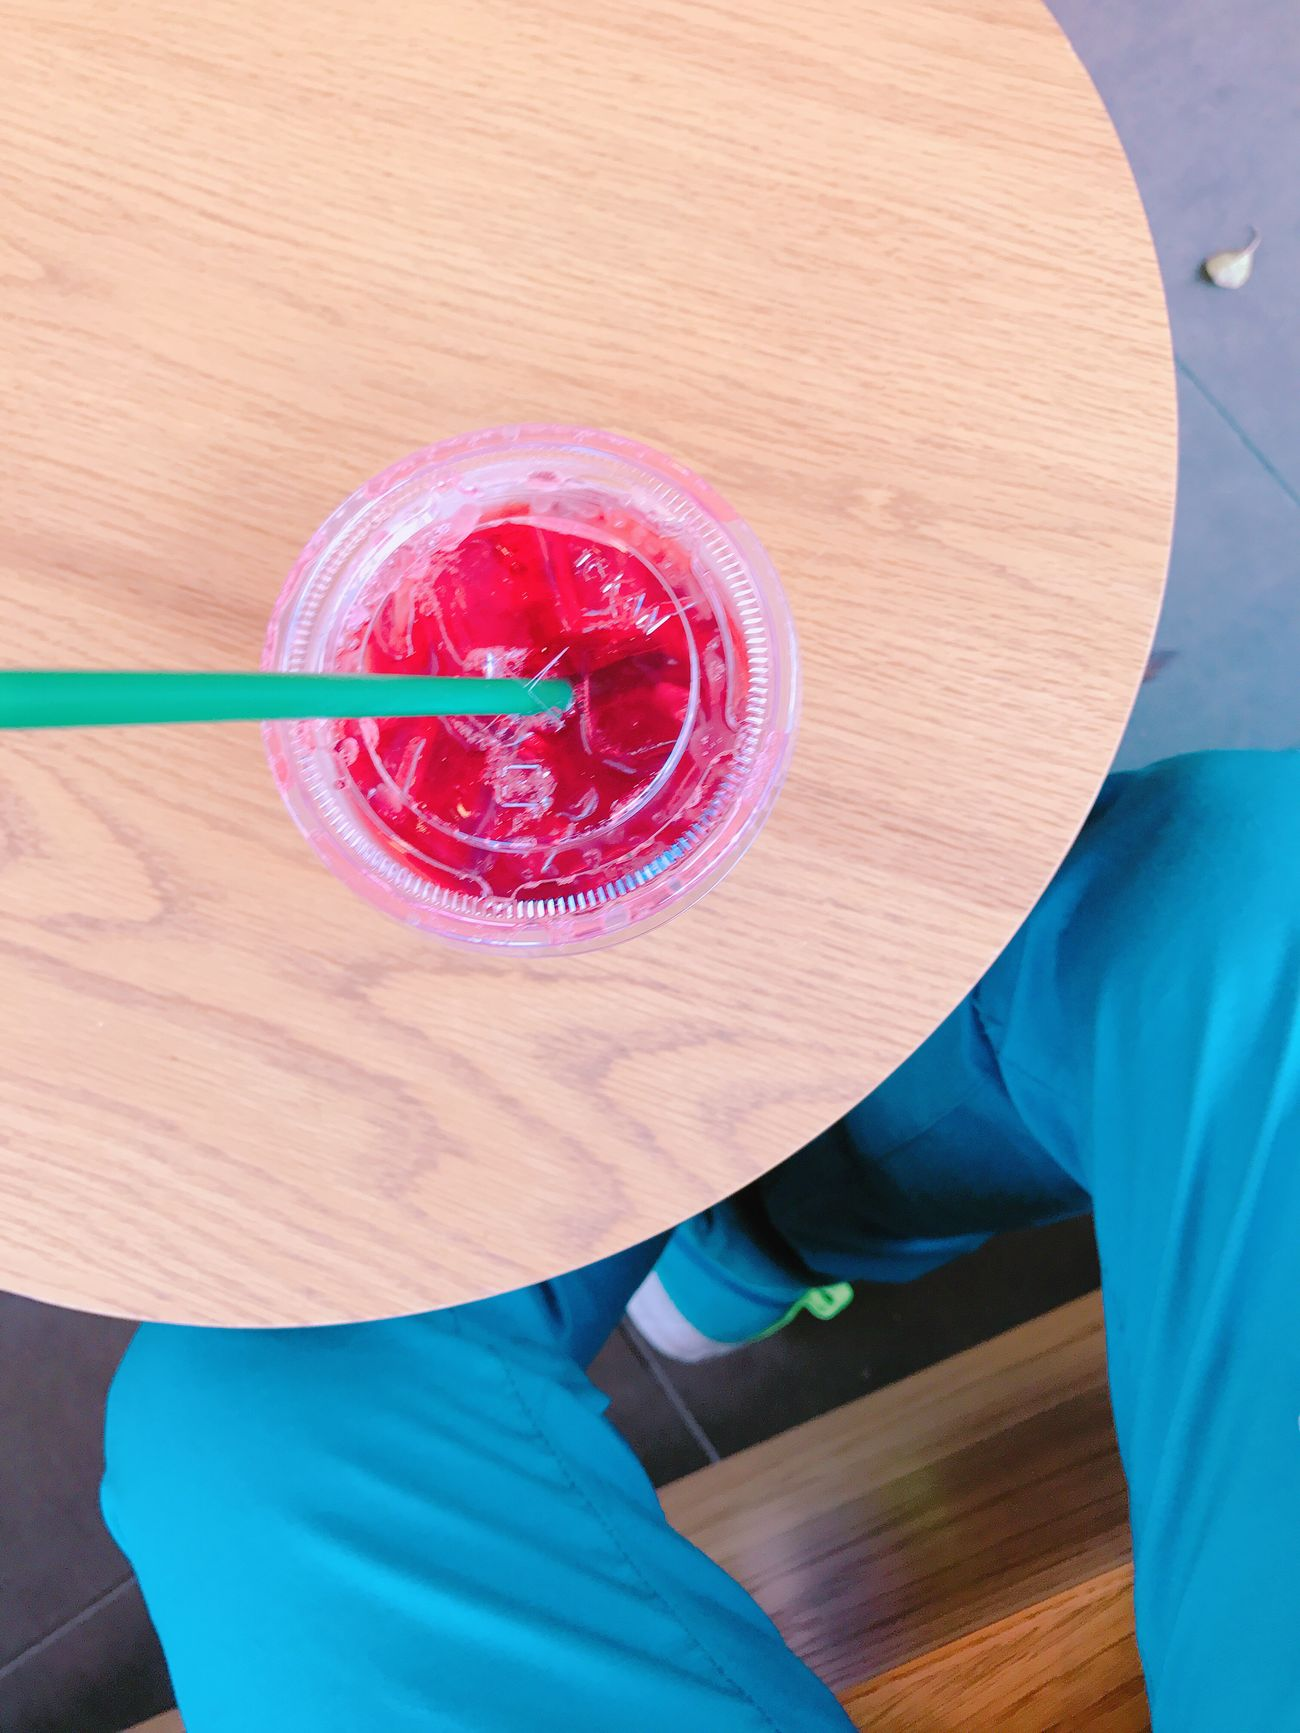 Sparkling🍹✨ Lifestyles Starbucks Cafe Photooftheday Food And Drink Taking Photos Iphonephotography Photo Photography Japan